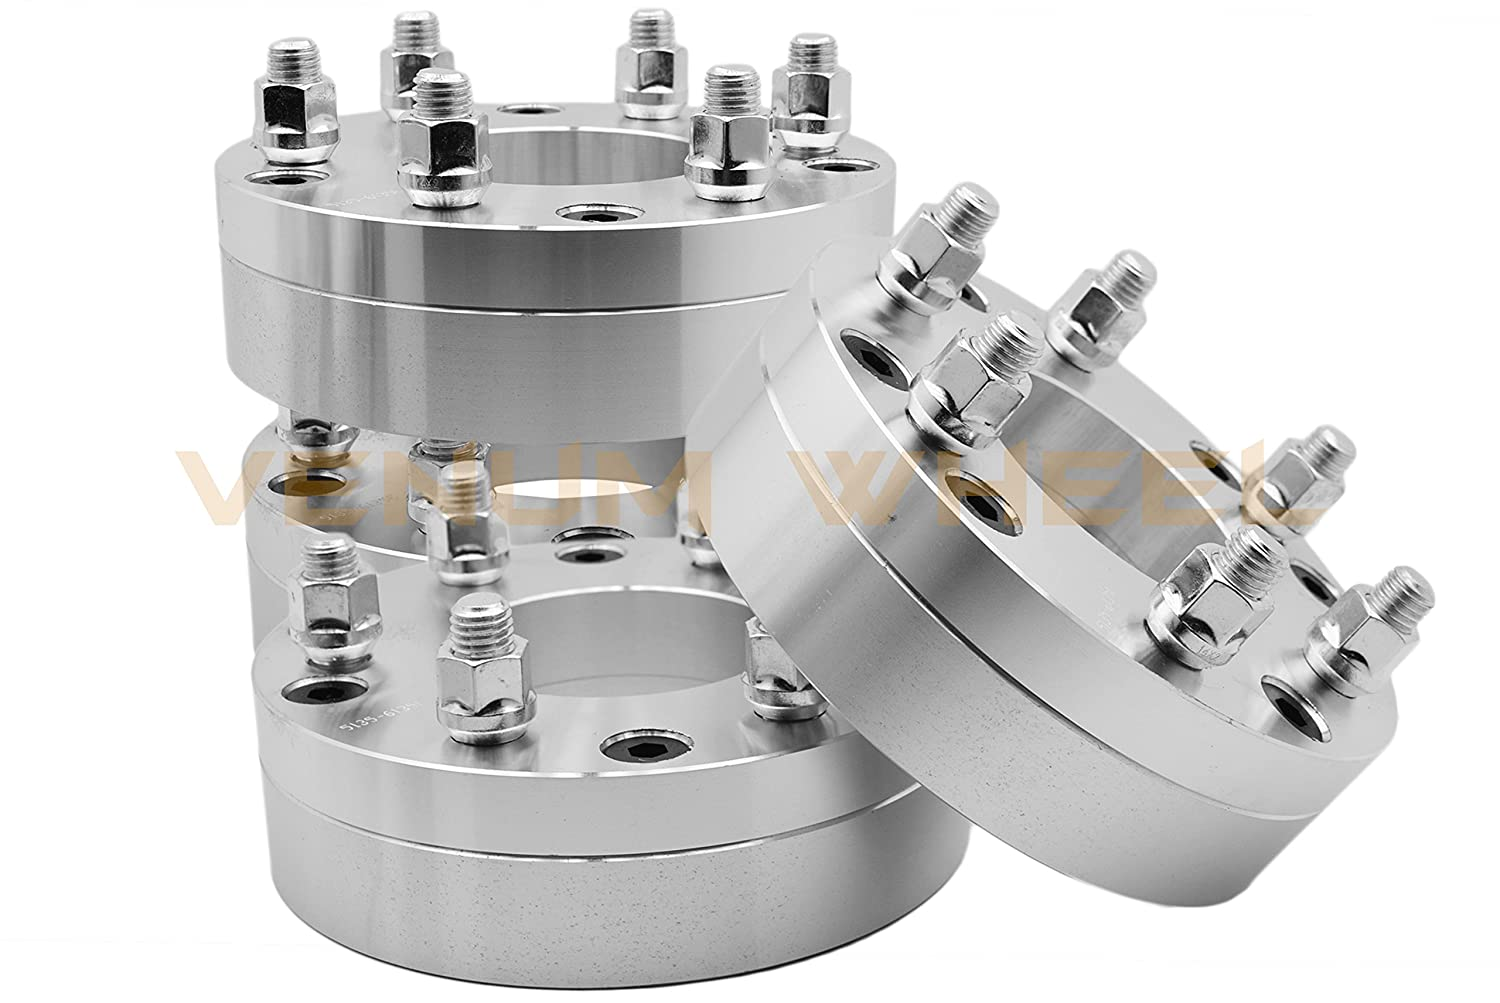 4 Pc Ford 5x135 MM To 6x135 MM 5 To 6 Lug Wheel Spacers Adapters Conversion Bolt On 2' Thick 5 Lug Wheels on 6 Lug Trucks 6x135 Wheels On 5x135 Trucks Heavy Duty 2 Piece Adapters Venum Wheel Accessories